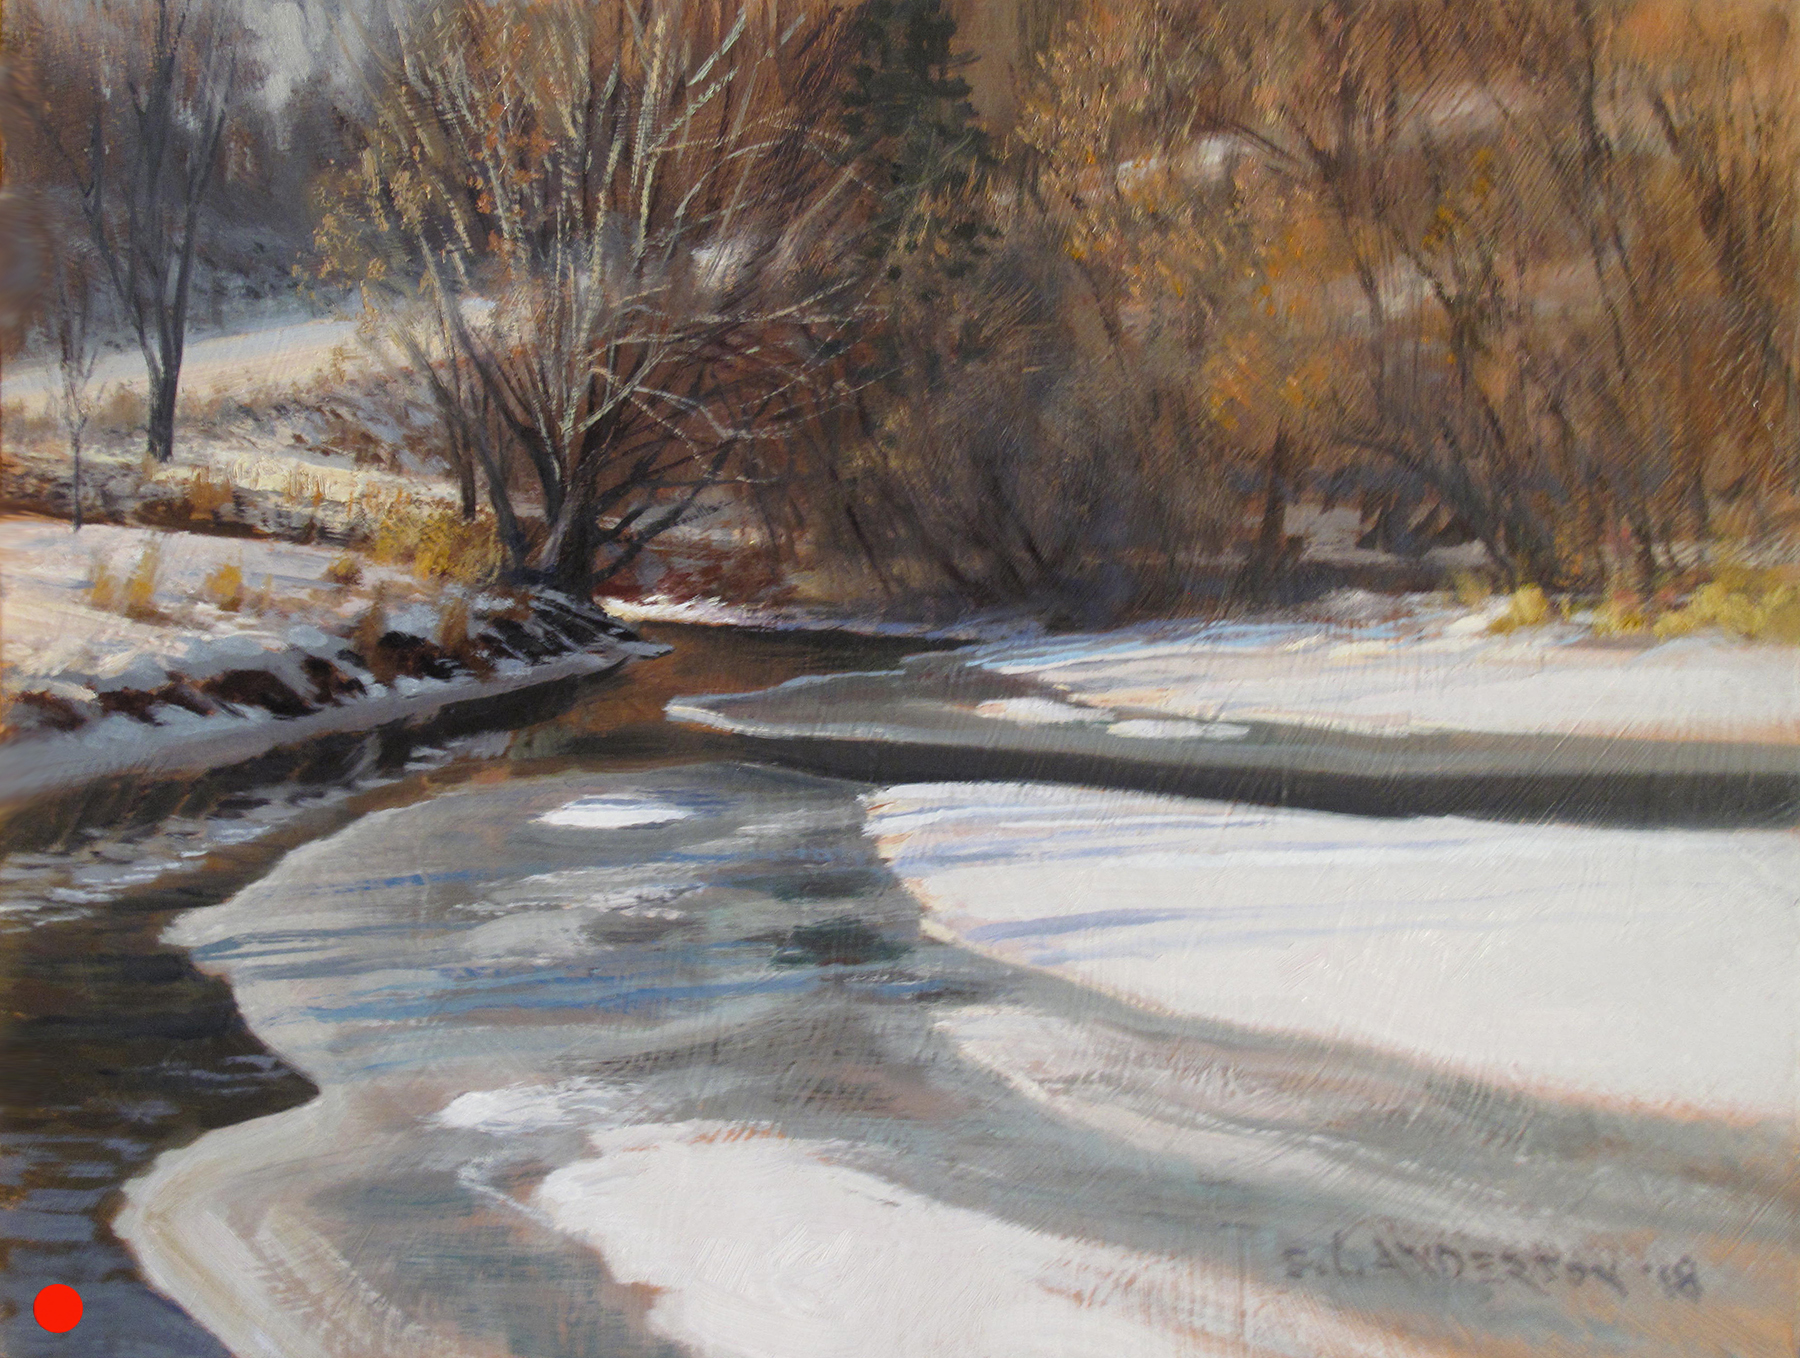 Bassett Creek at Wirth Park   (SOLD) 12 x 16 oil on panel Painted on location at Theodore Wirth Park in Minneapolis. My vantage point is just off the golf course's brutal uphill 10th hole. Brutal for me, that is.